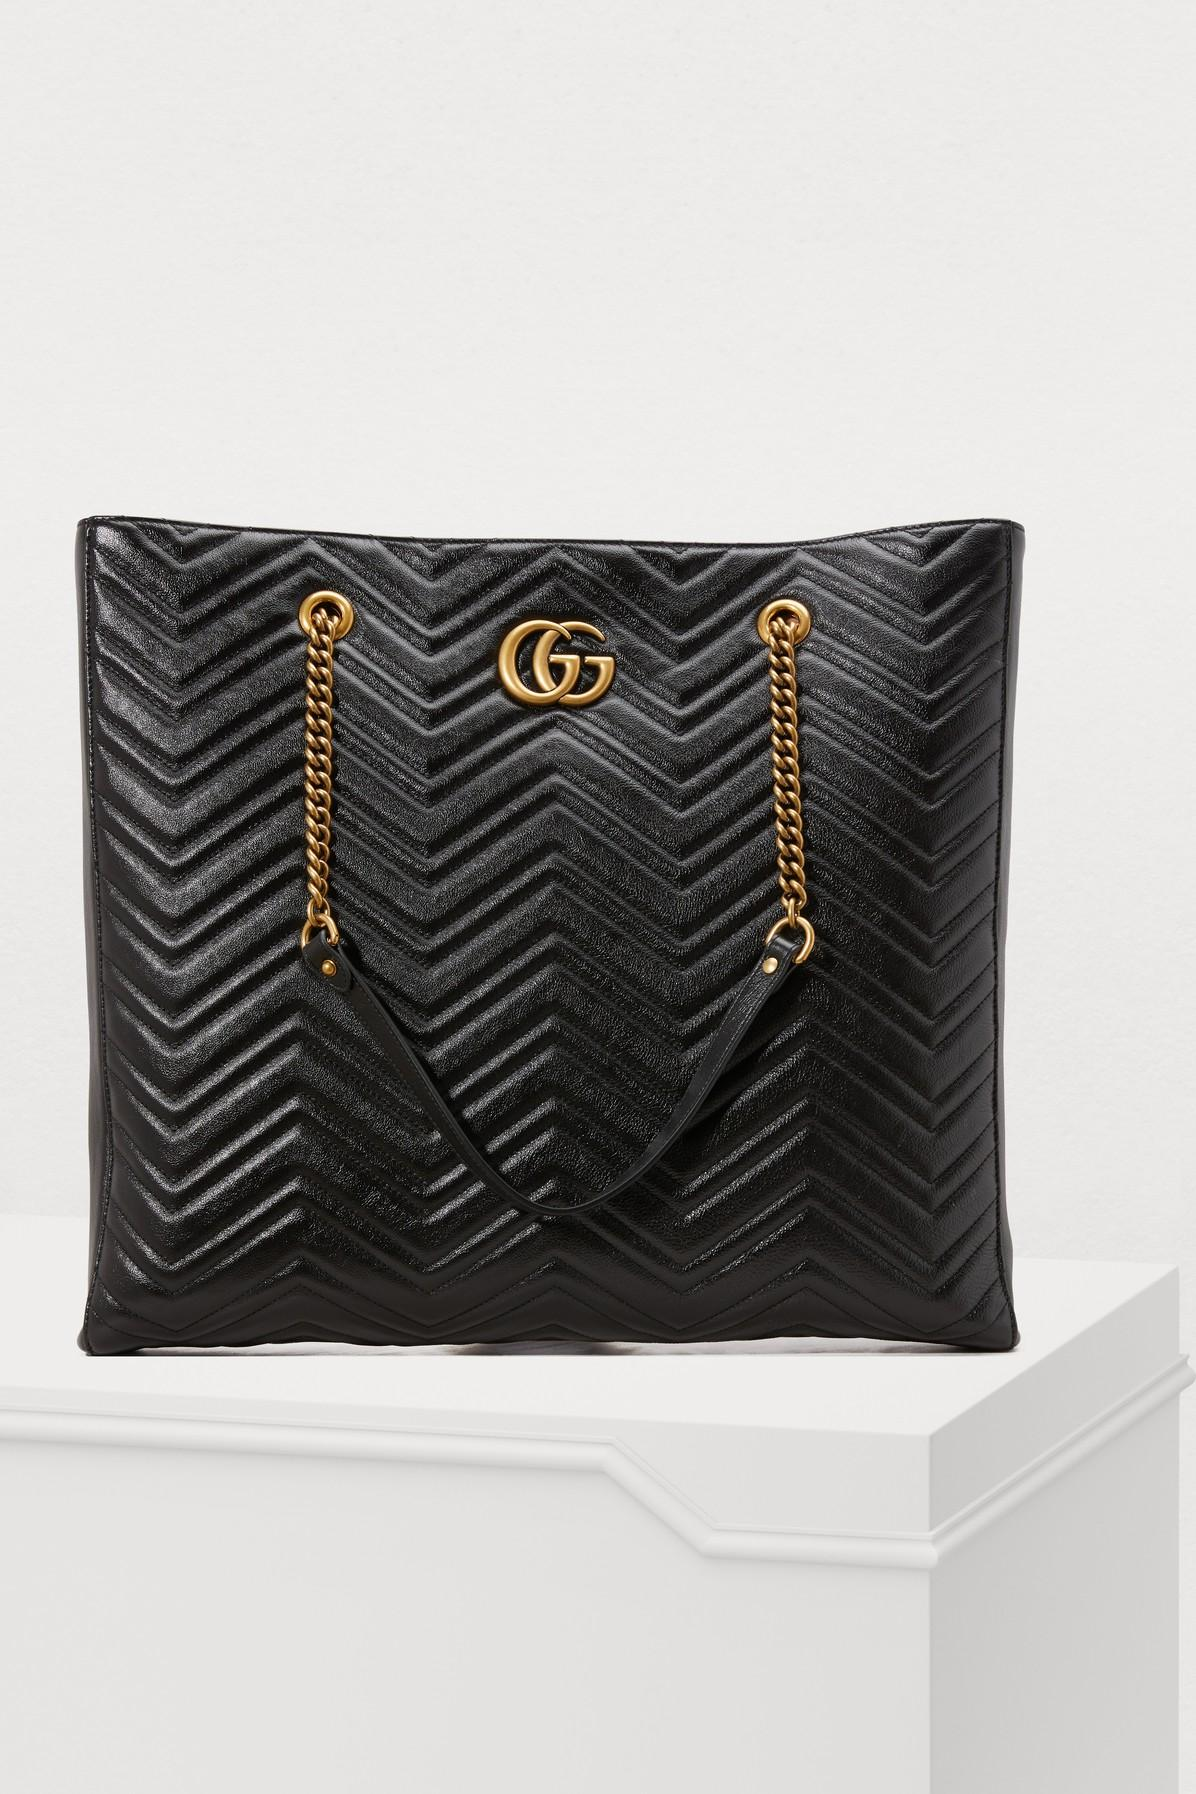 b5b89ae803d Gucci Gg Marmont Large Leather Tote In 1000 Black